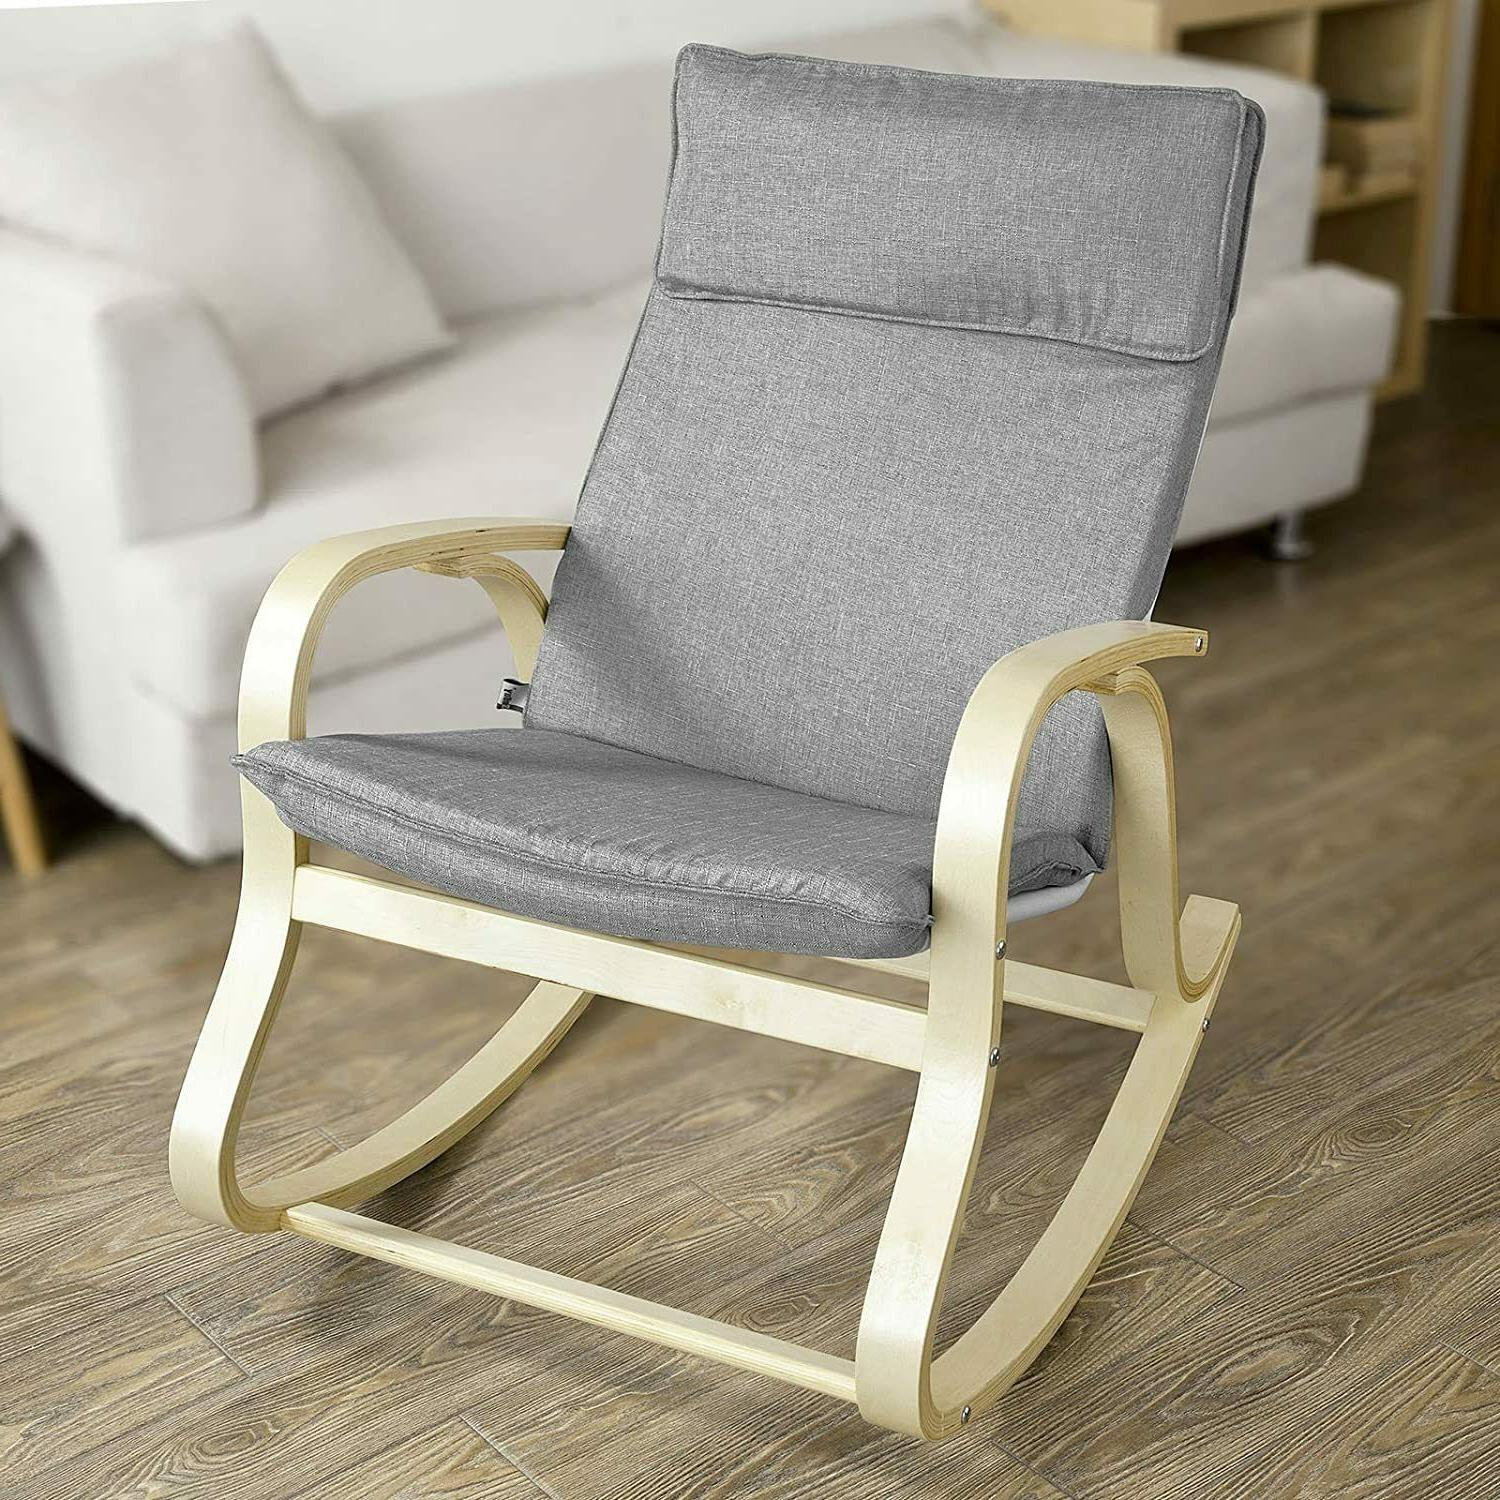 Wood Chair Baby Seat Rest Cushion